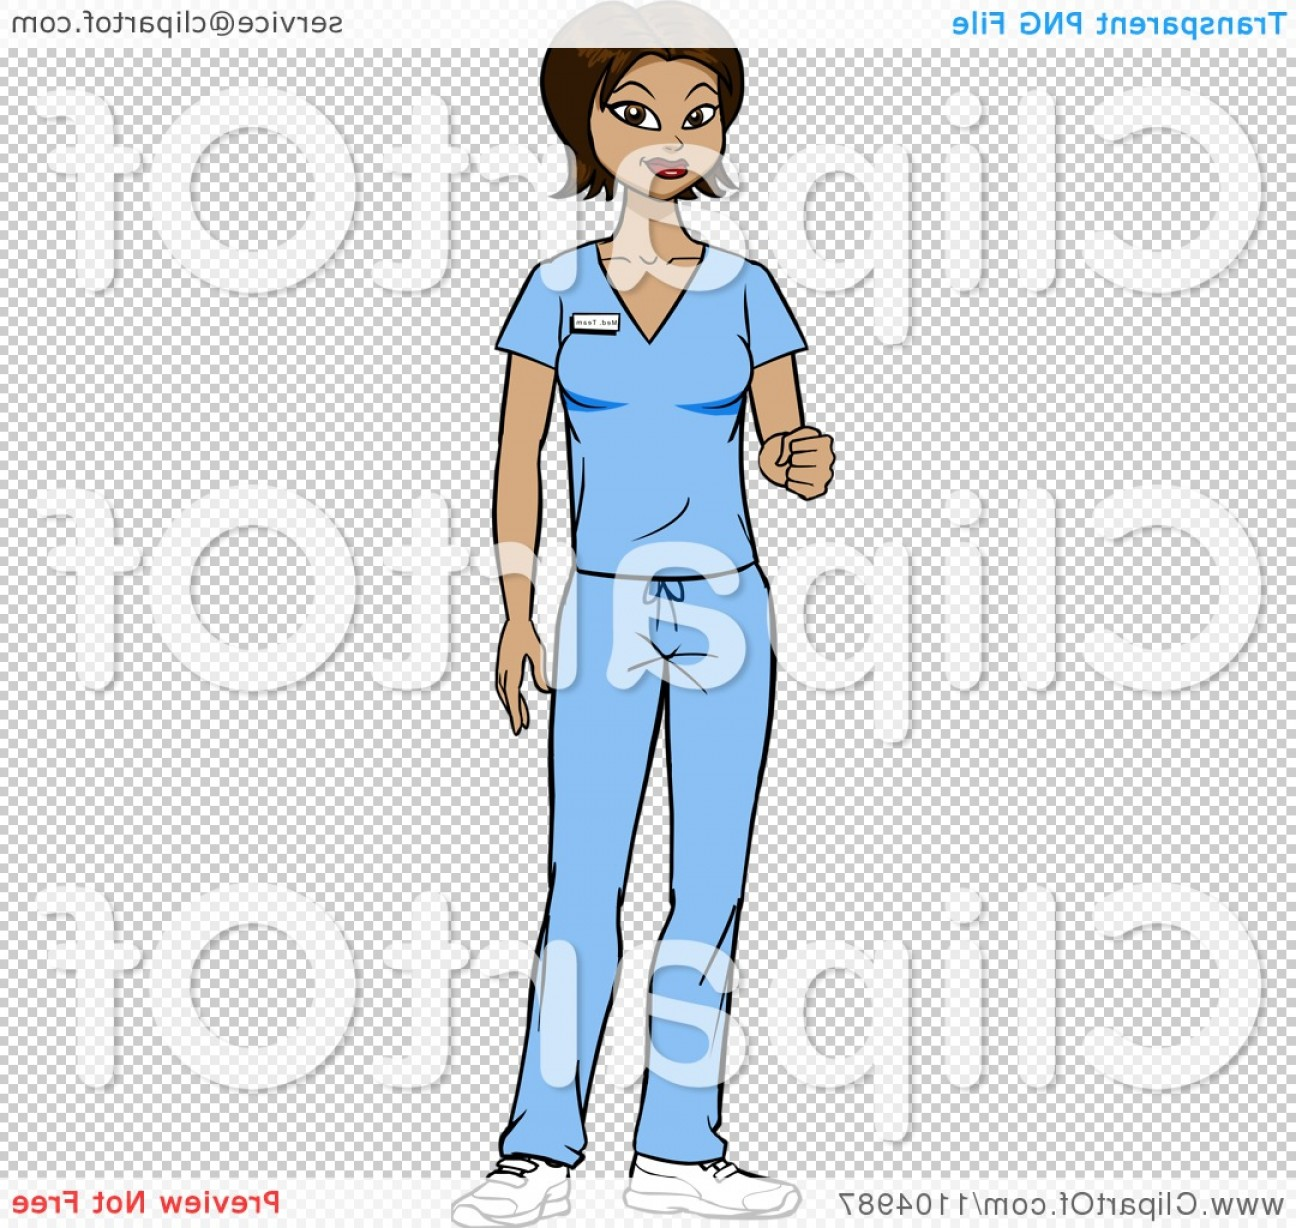 Nurse Juggling Vector: Friendly Hispanic Nurse Surgeon Or Doctor In Scrubs Holding Out Her Knuckles